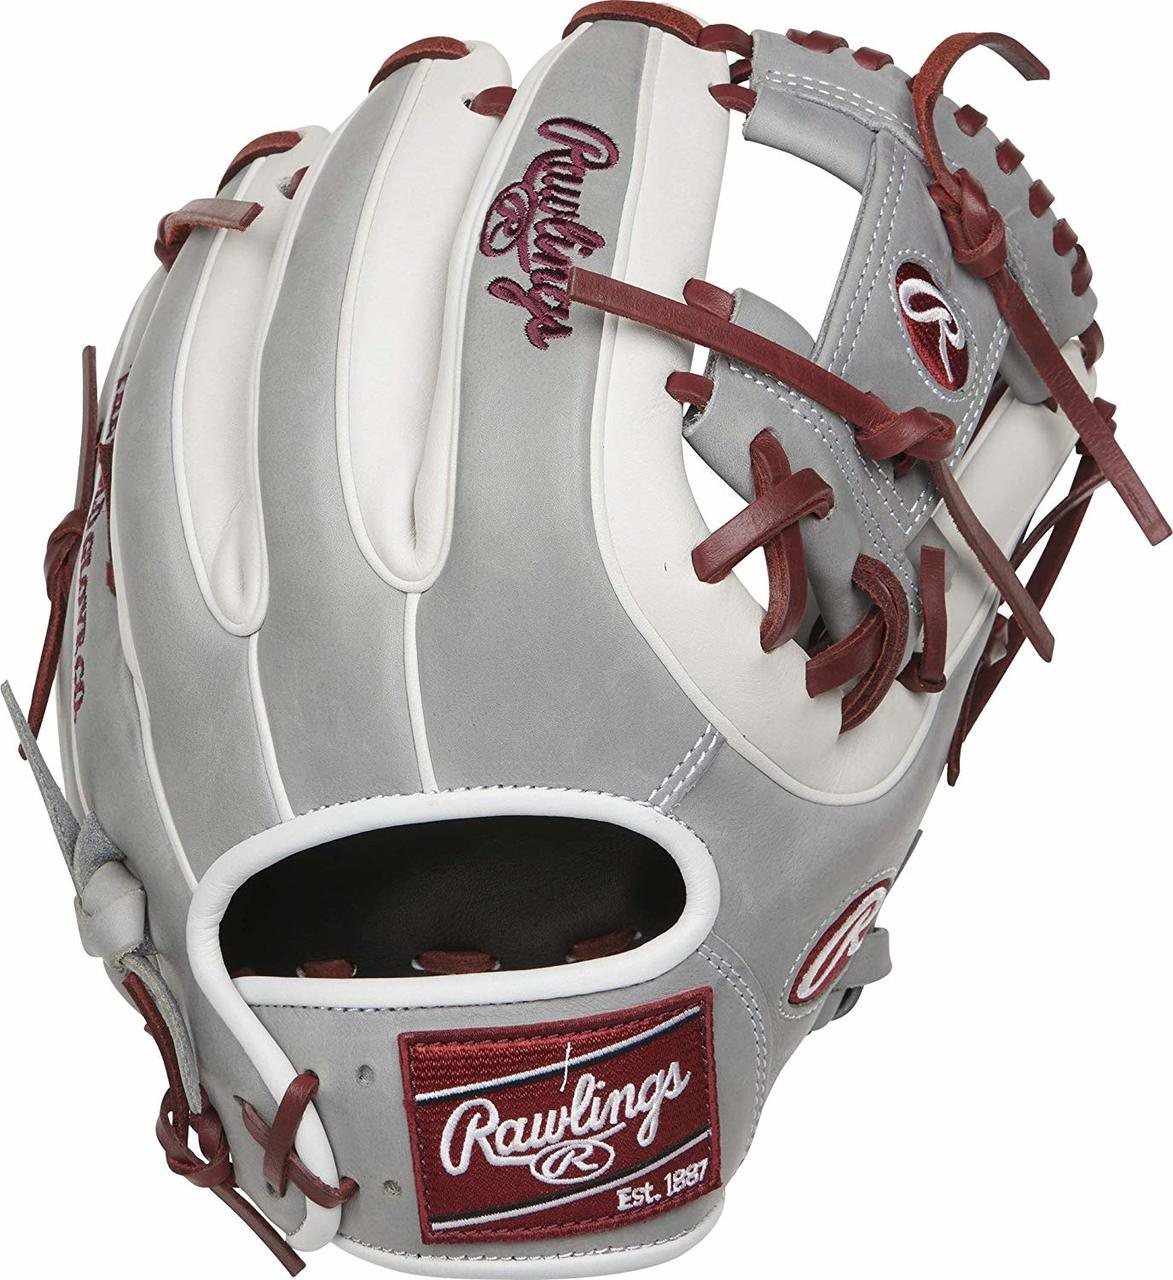 rawlings-heart-of-the-hide-315-2shw-baseball-glove-11-75-right-hand-throw PRO315-2SHW-RightHandThrow  083321598753 Skillfully crafted from our ultra-premium steer-hide leather the Rawlings 11.75-inch Heart